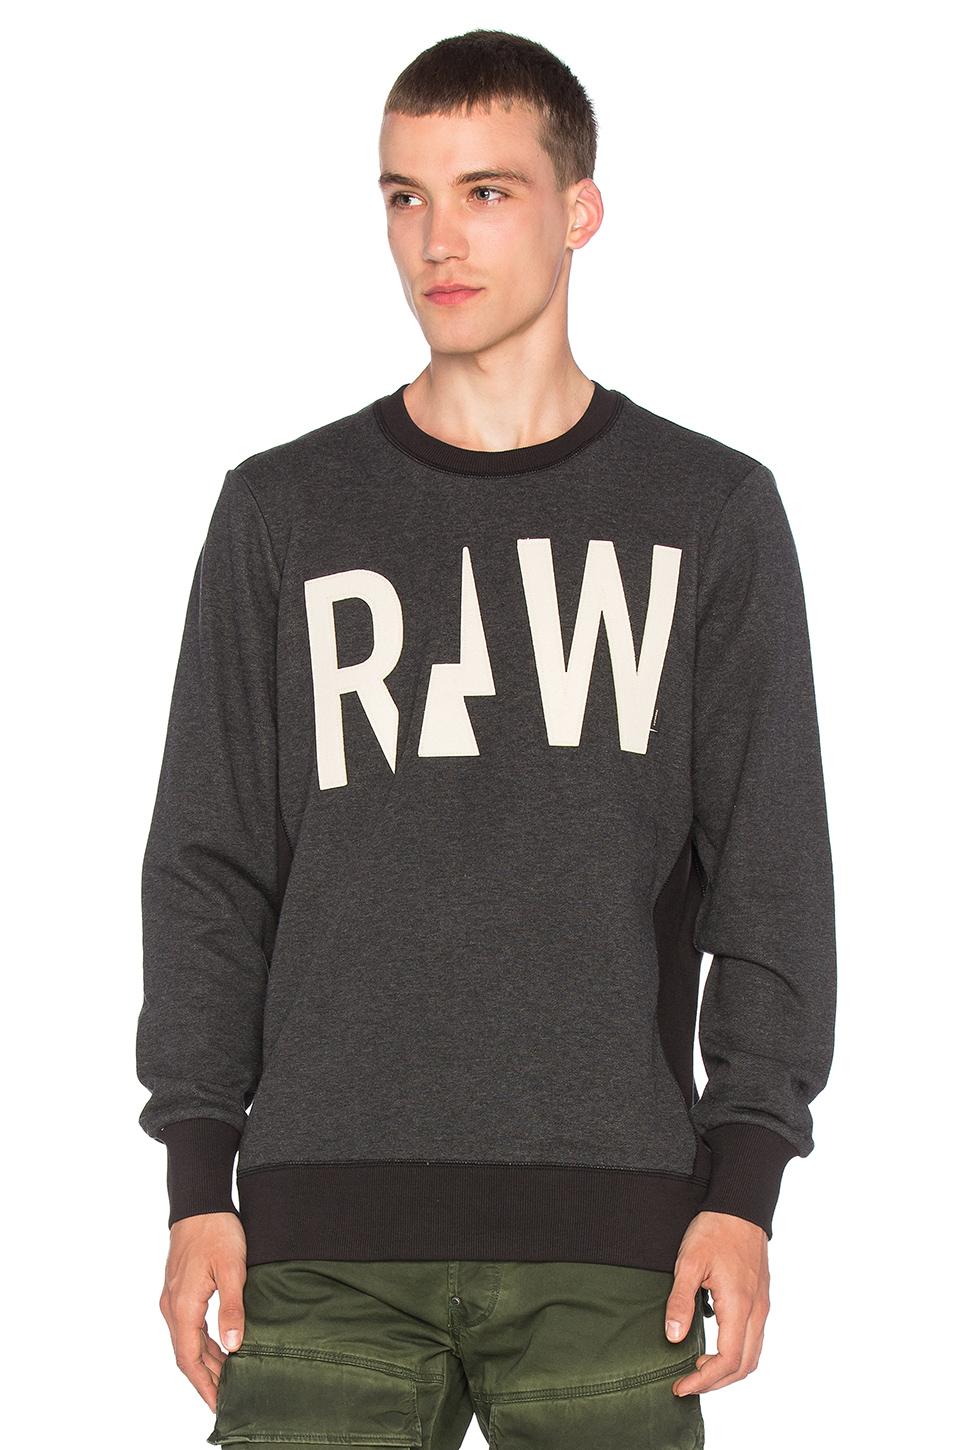 g star raw netrol sweatshirt in gray for men lyst. Black Bedroom Furniture Sets. Home Design Ideas